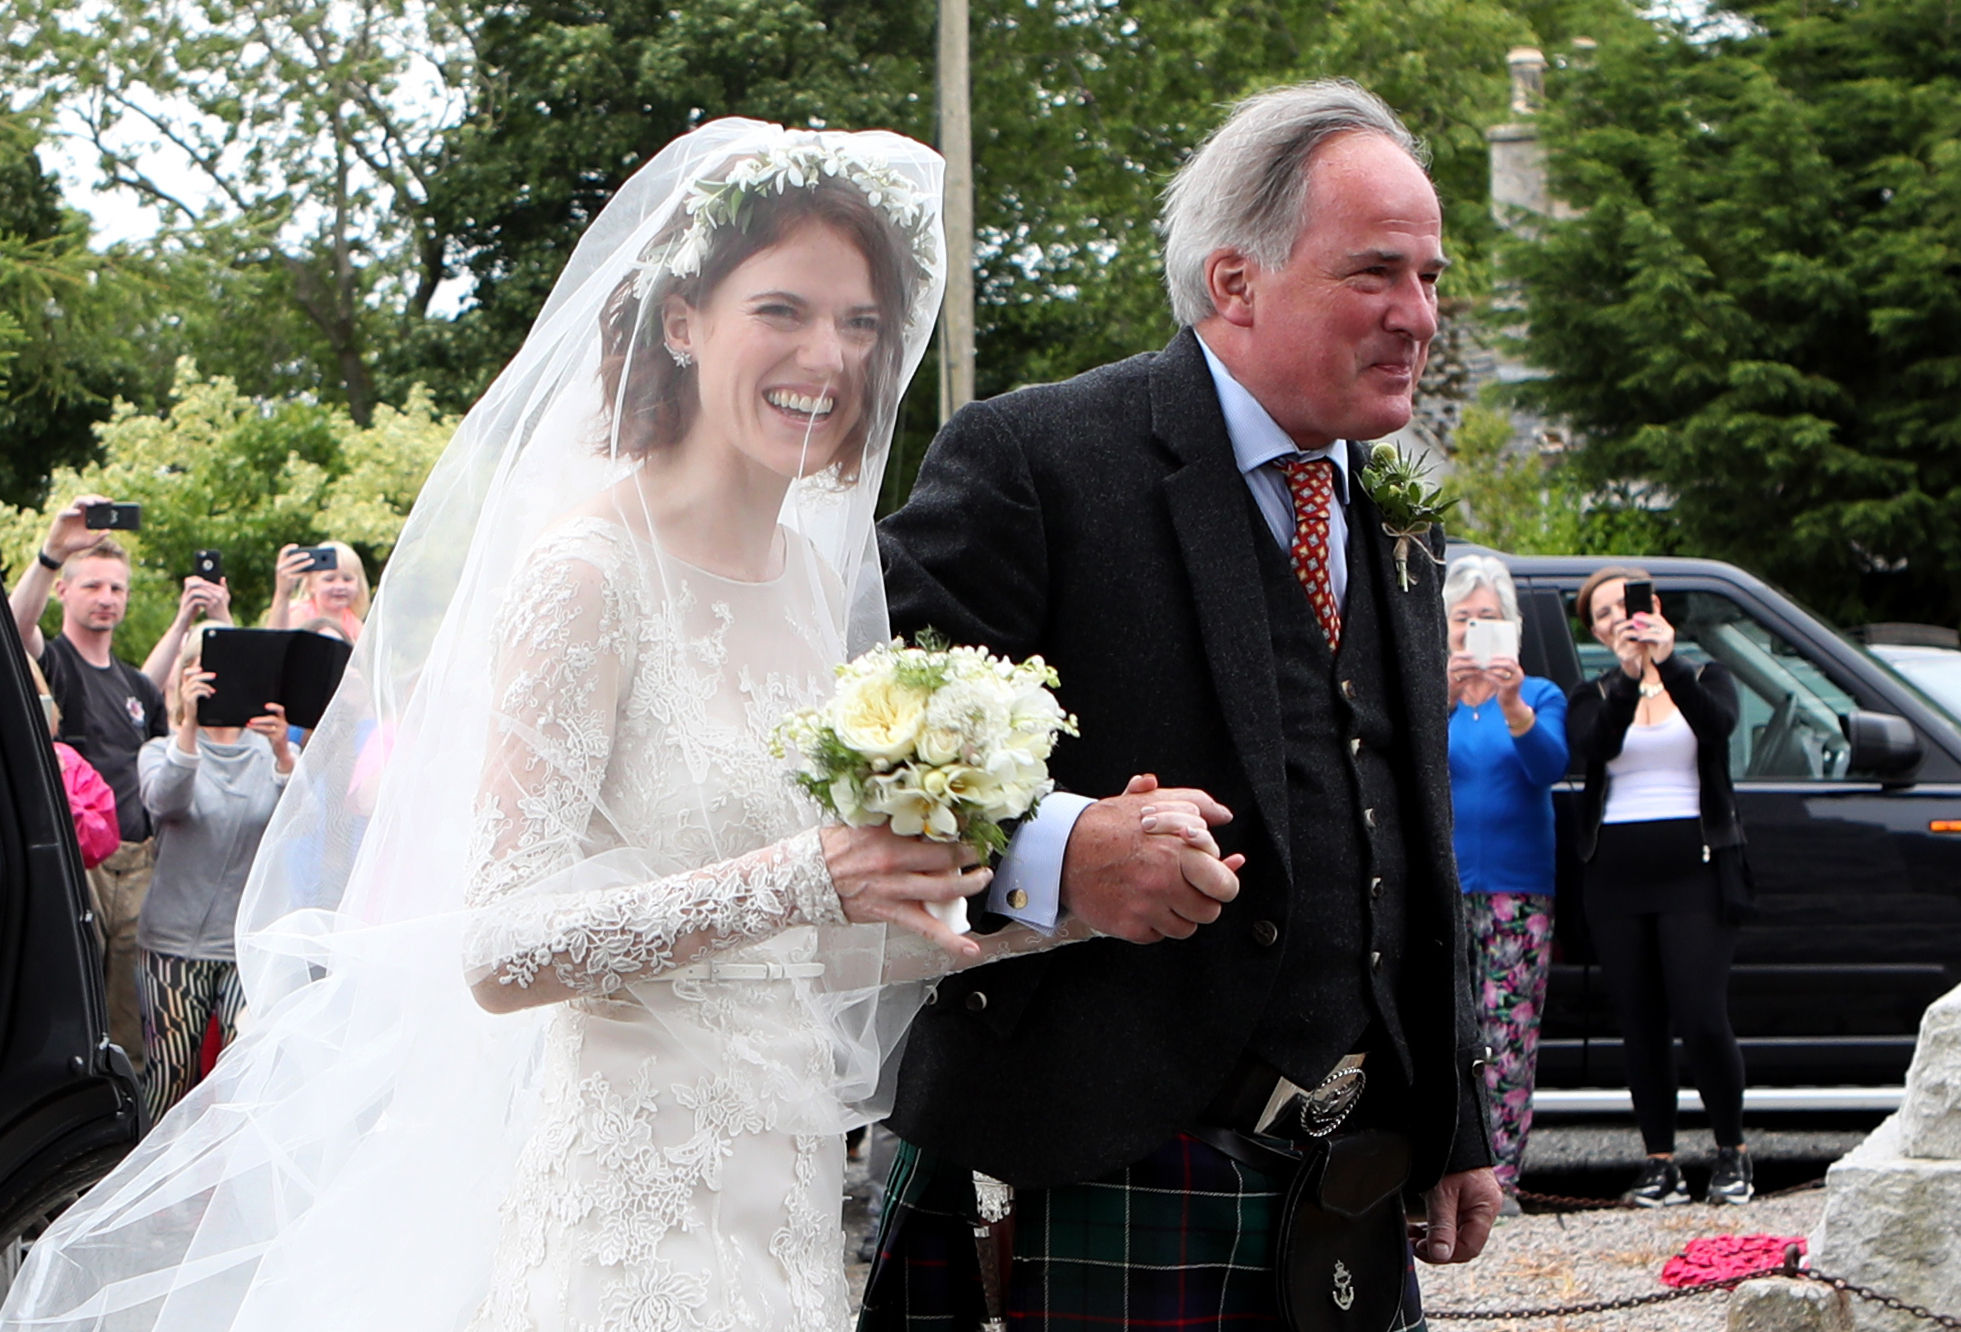 Rose Leslie with her father Sebastian arrive at church